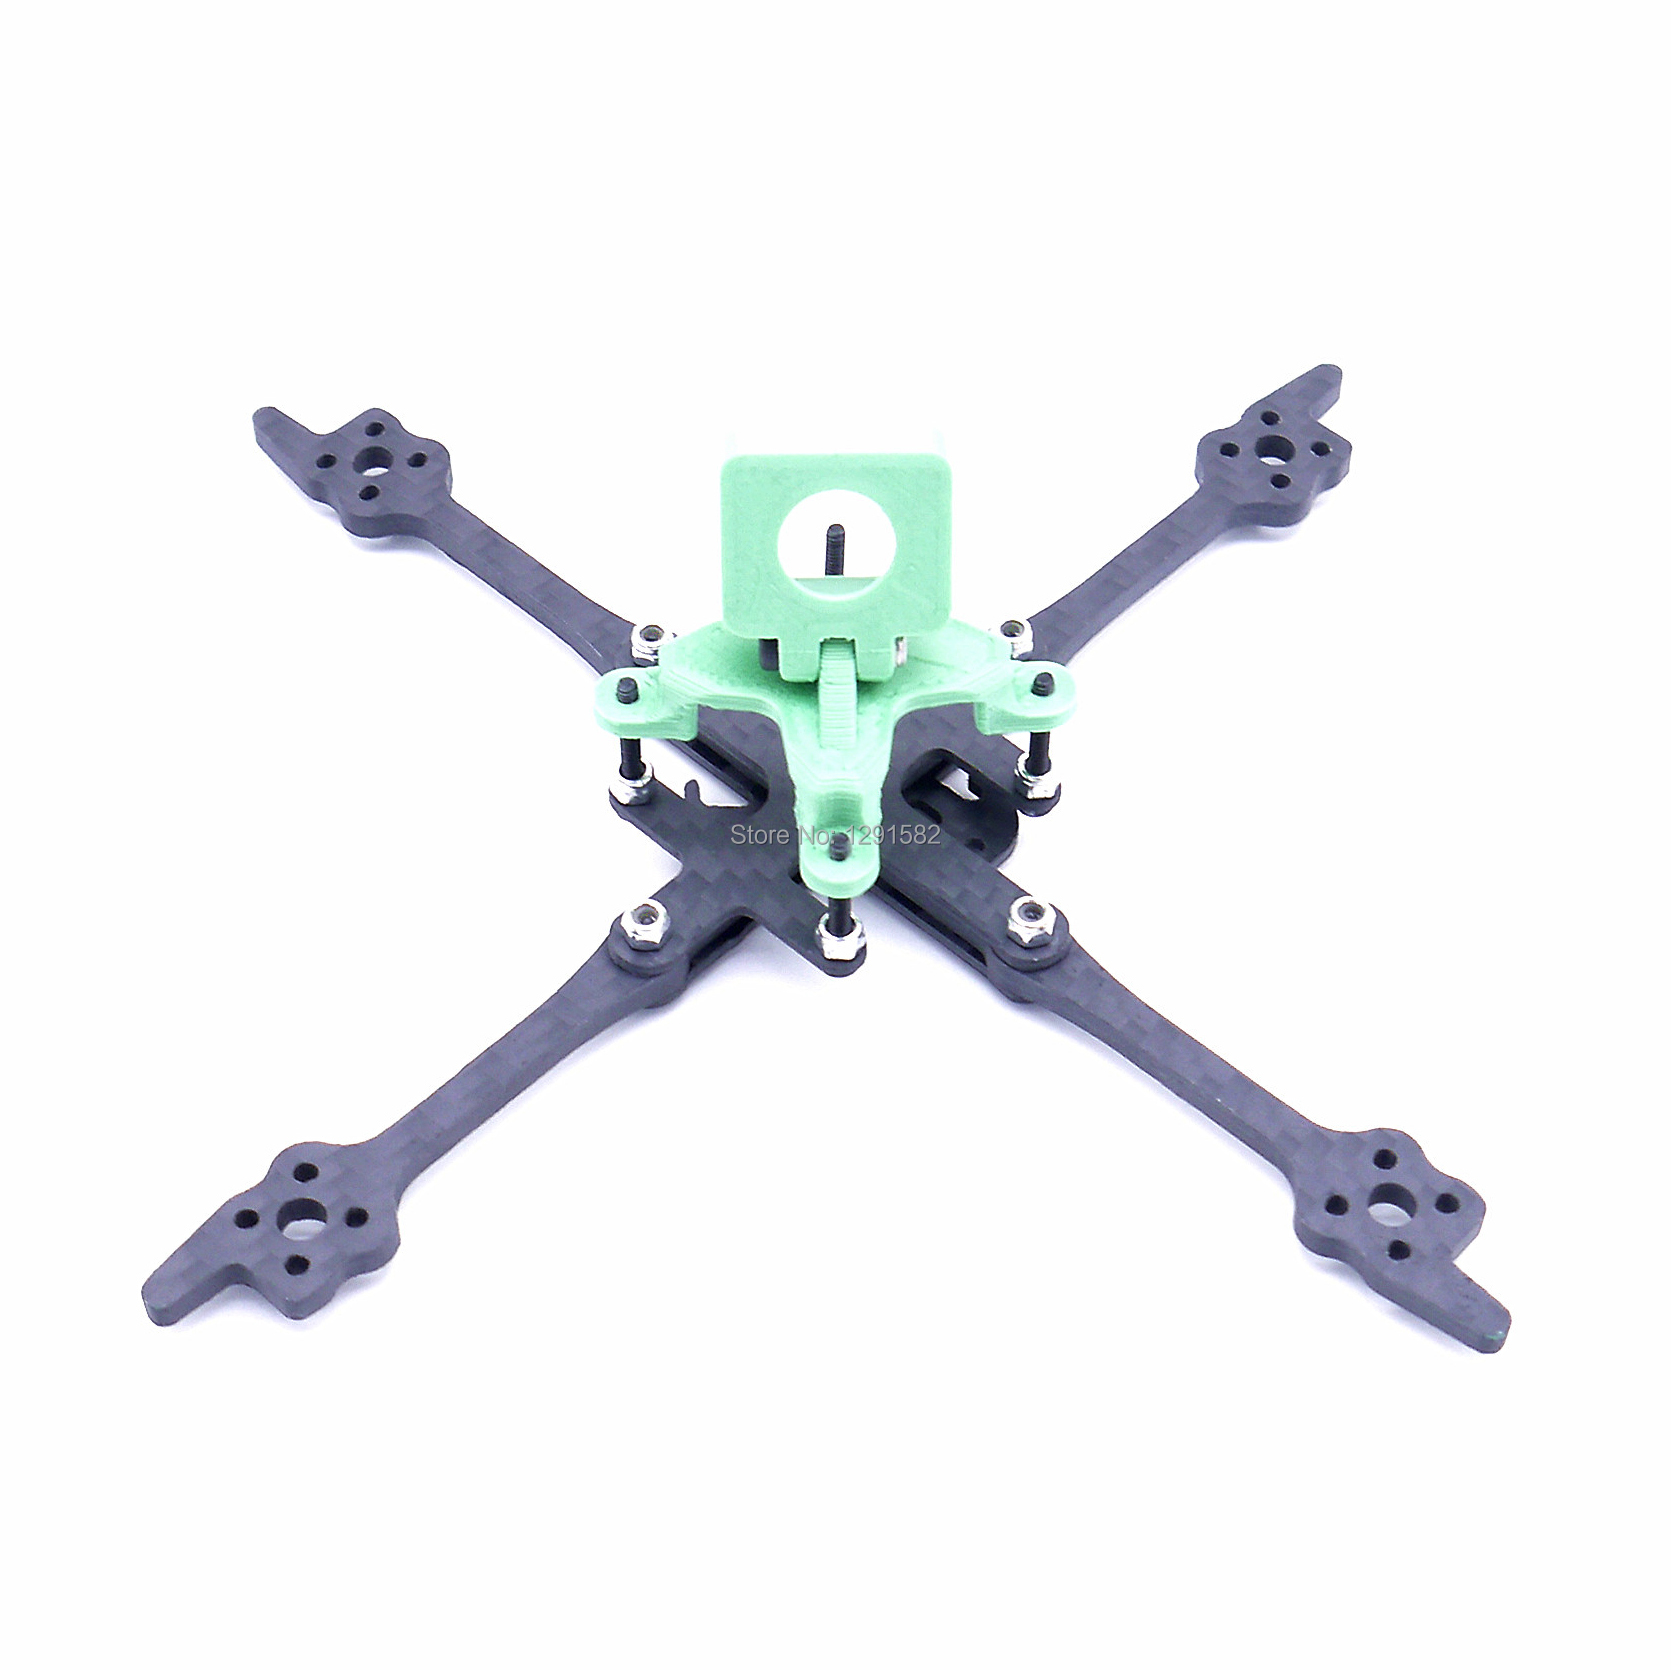 Image 3 - FPV Fonster Kpro 2.5inch 125 125mm X type Toothpick 3mm Arm thickness FPV Tiny Frame for FPV Racing Drone kitParts & Accessories   -